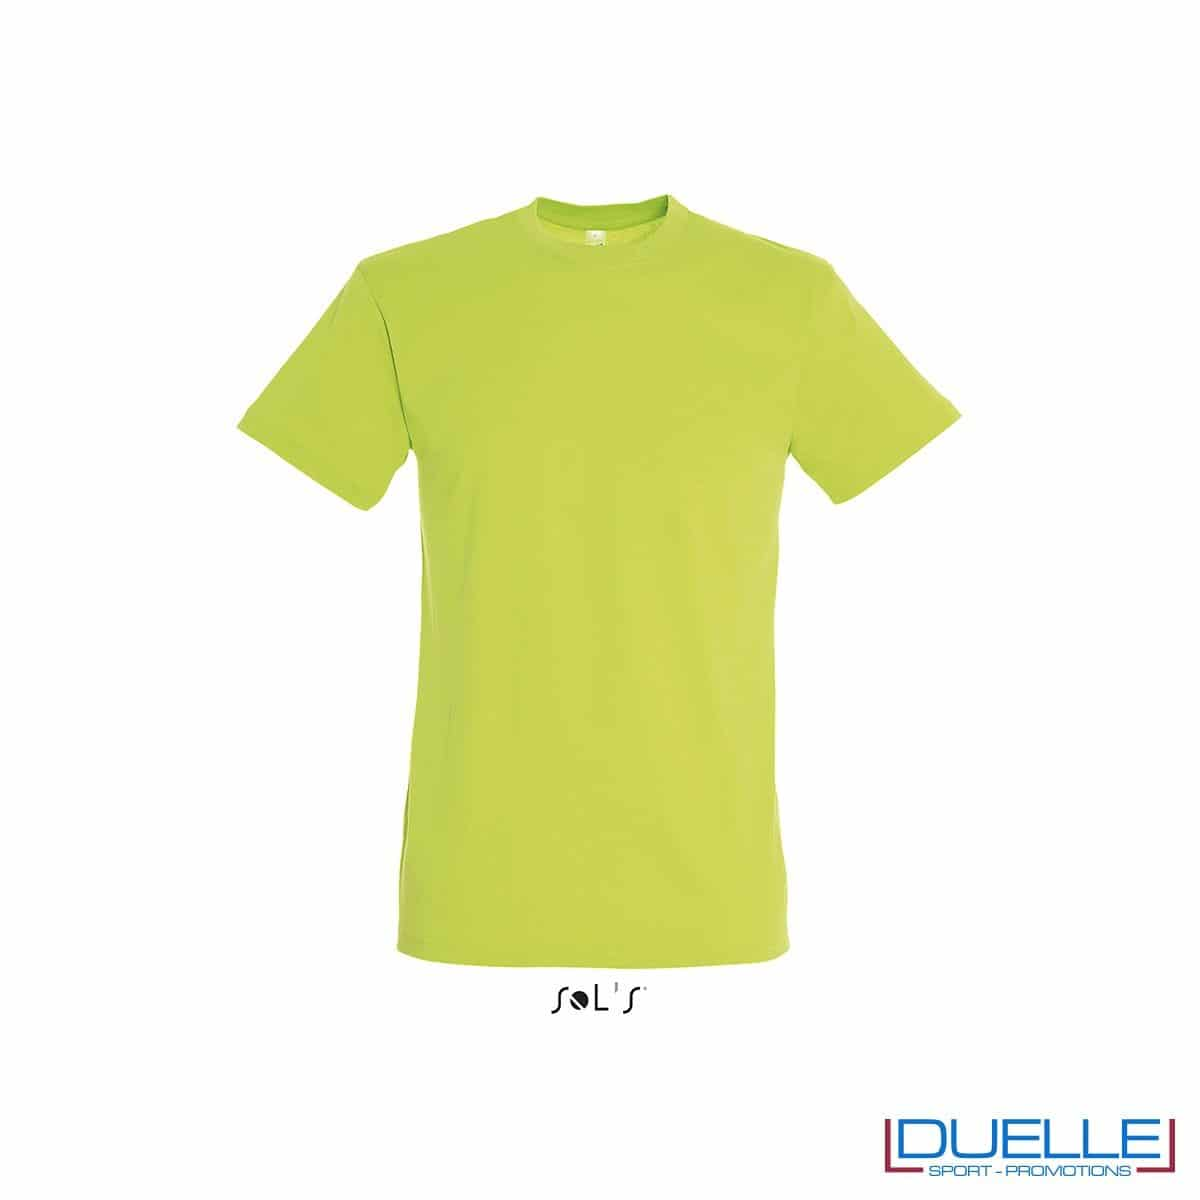 T-shirt in cotone colore verde lime